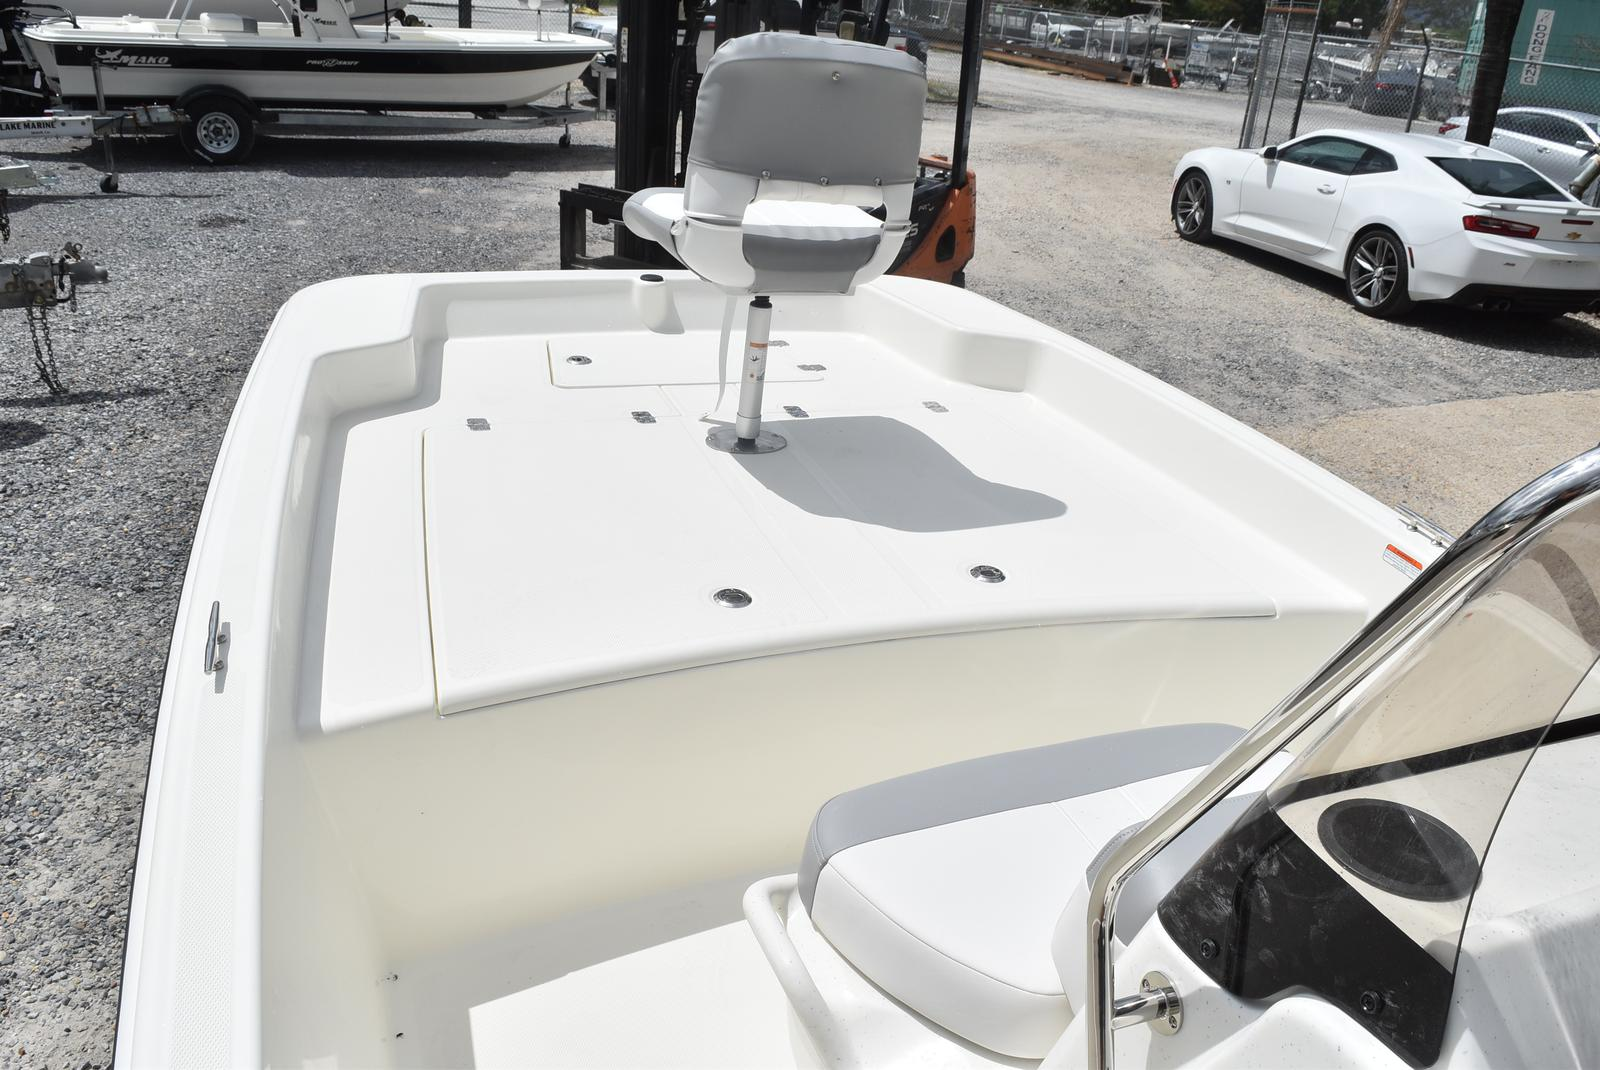 2020 Mako boat for sale, model of the boat is Pro Skiff 17, 75 ELPT & Image # 416 of 702